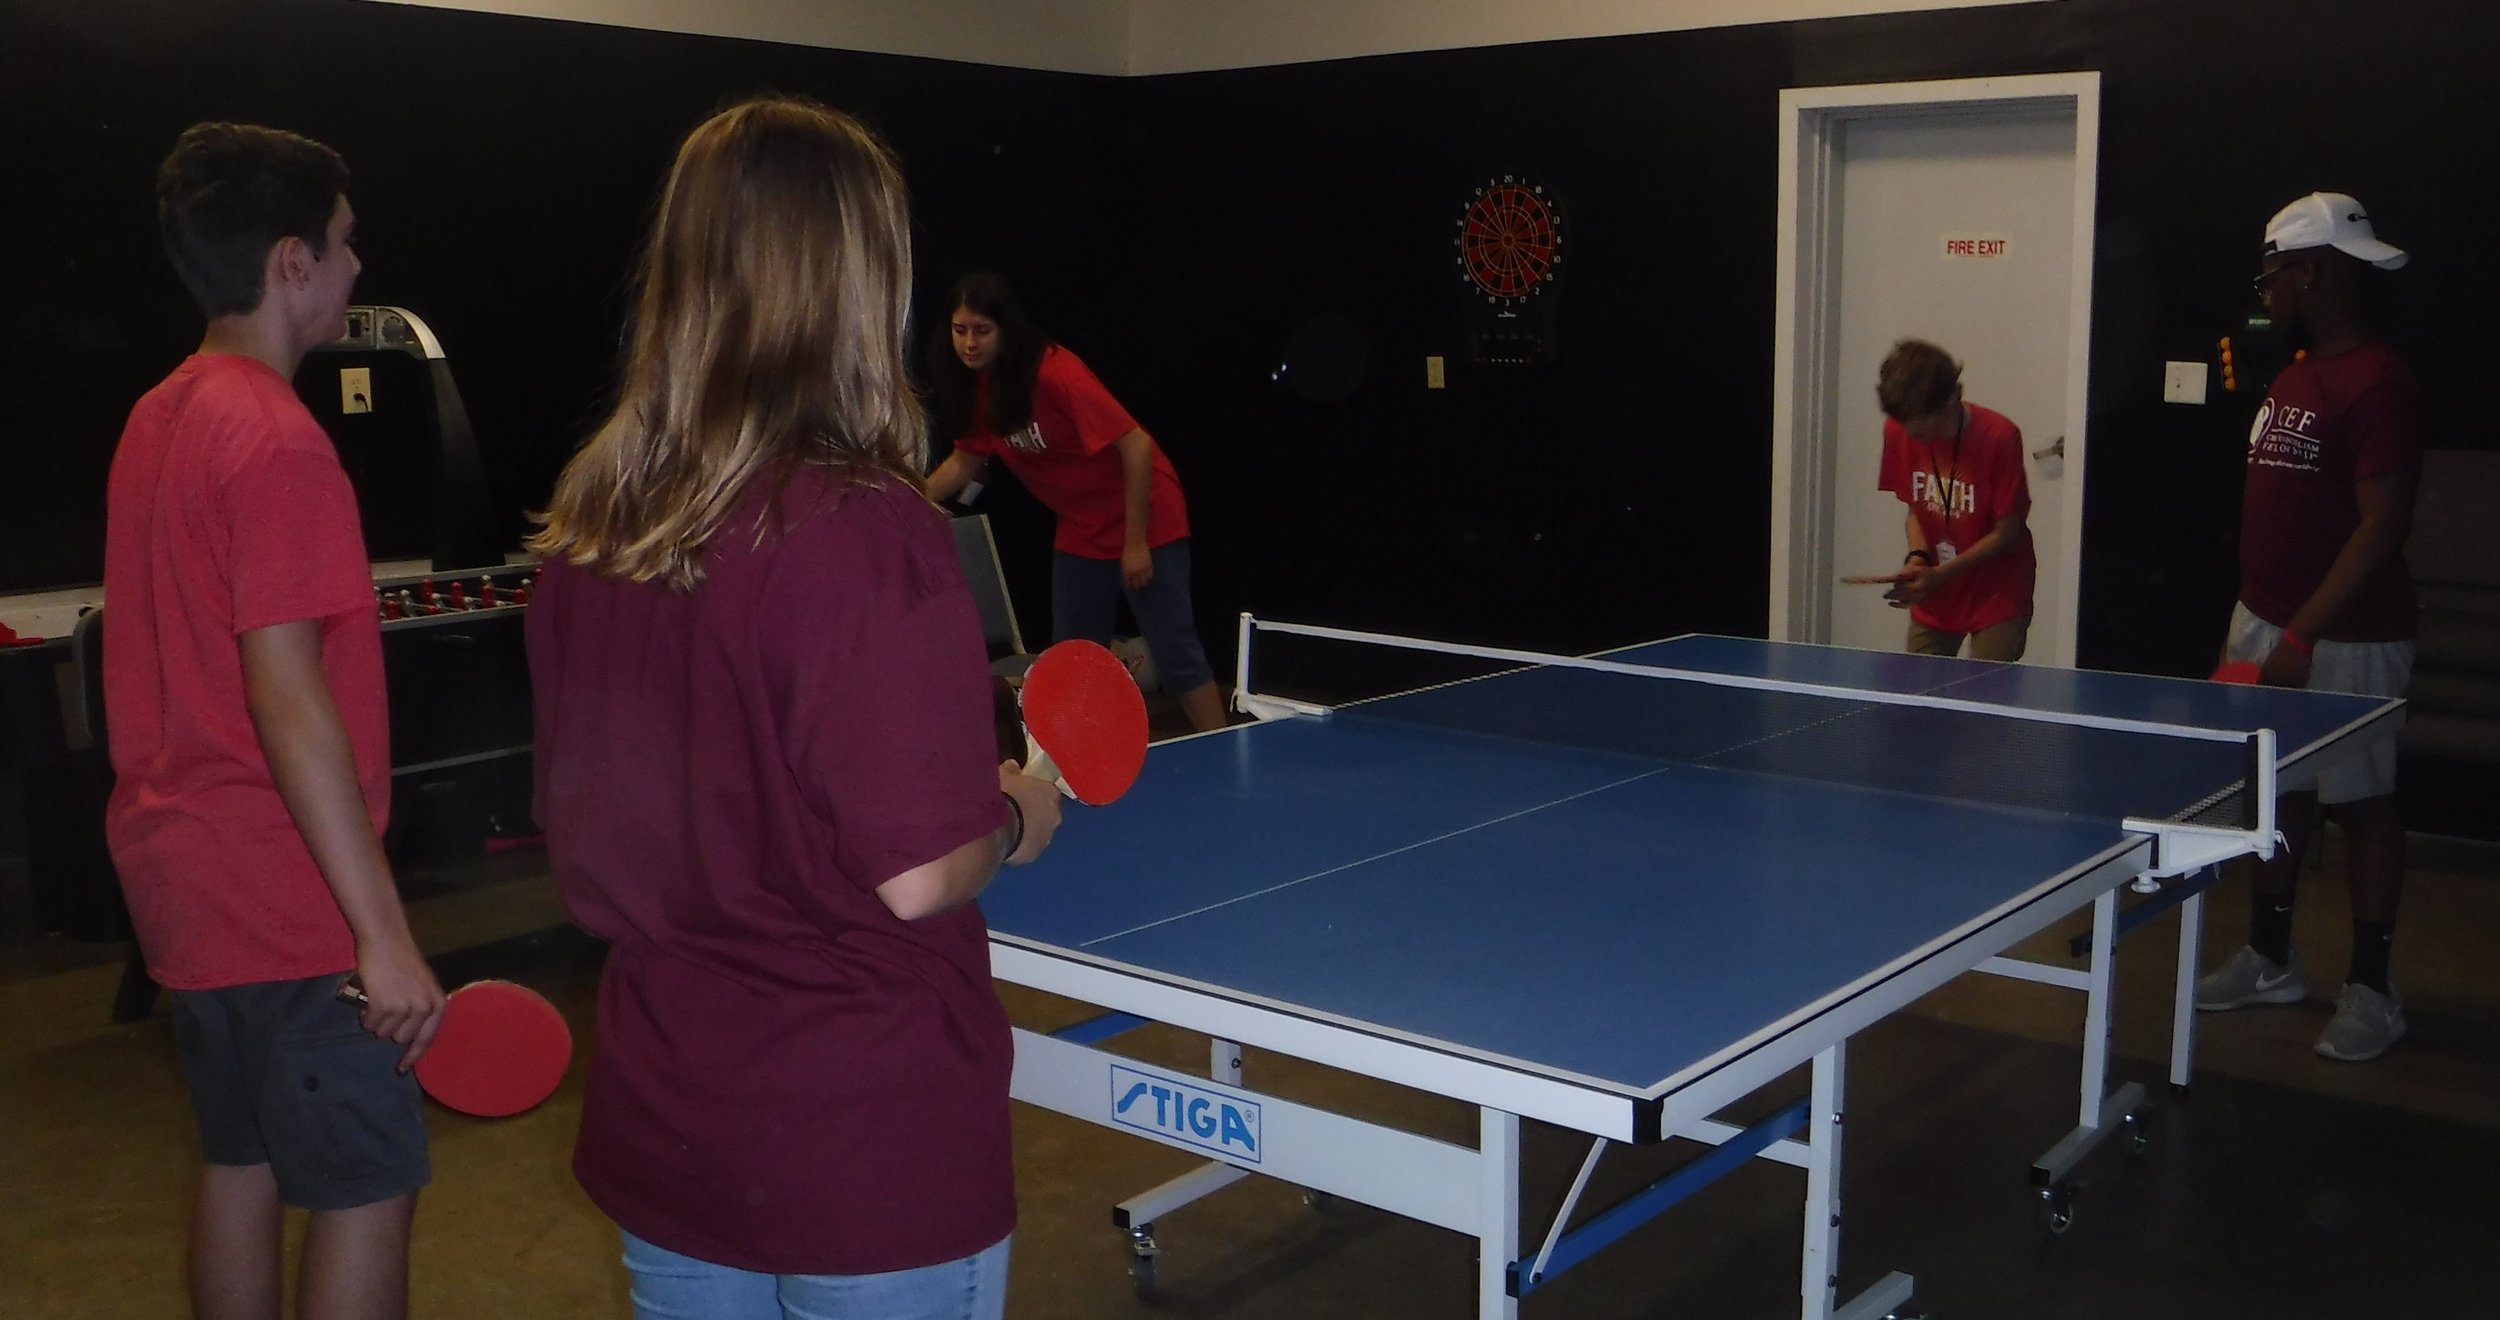 Christian Youth In Action ®  missionaries enjoy fellowship and competition during free time.